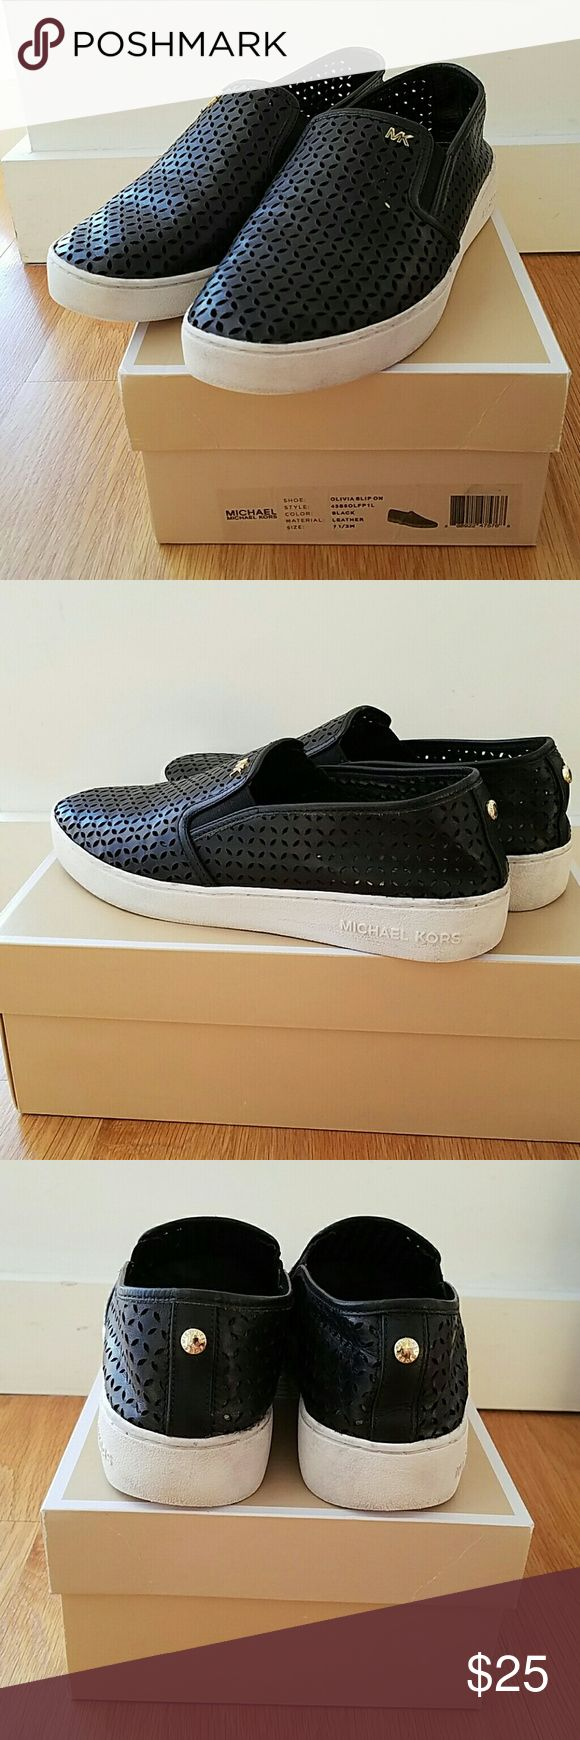 Slip on laser cut sneakers Black Olivia laser cut slip on black leather sneakers with white sole. Gold logo initials on front, branded snap on back. Signs of wear on white sole (impossible to keep brand new!) But still in good condition MICHAEL Michael Kors Shoes Sneakers